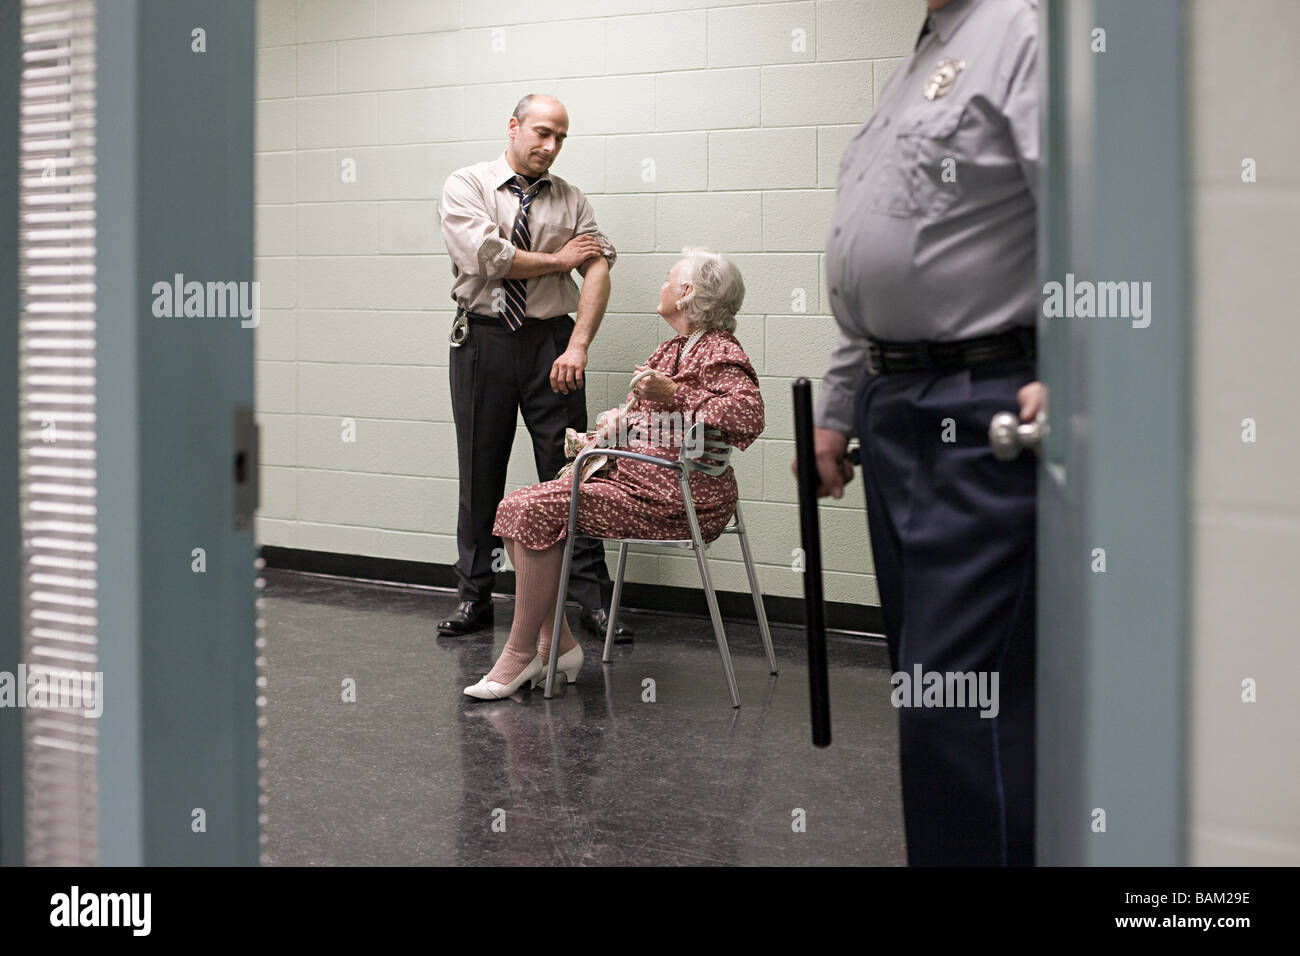 Senior woman being questioned - Stock Image